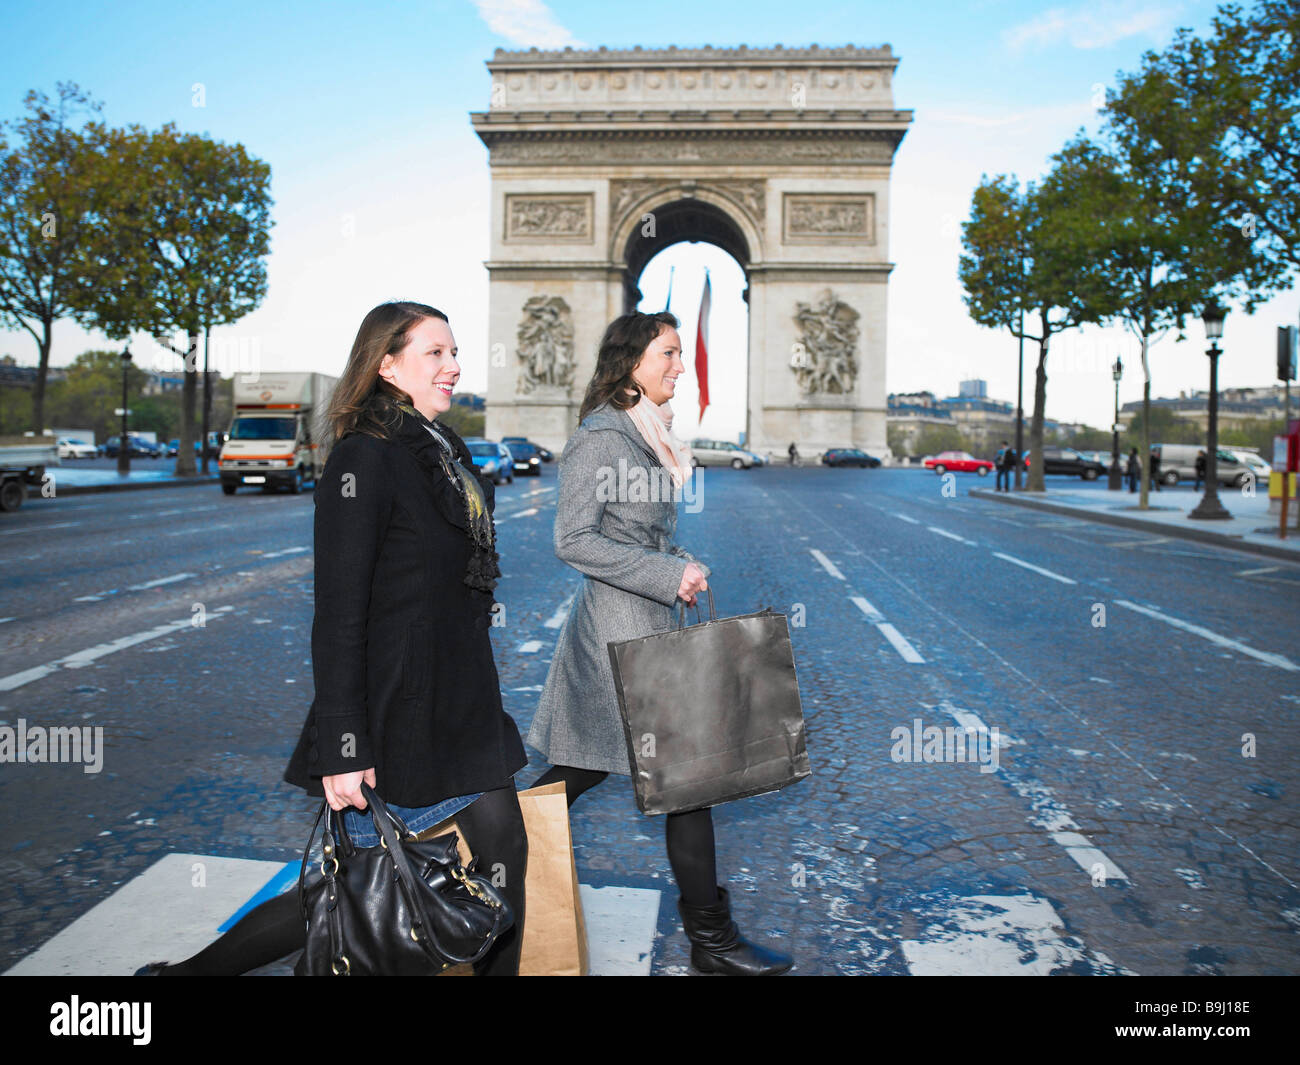 Women walking on Champs Elysees - Stock Image